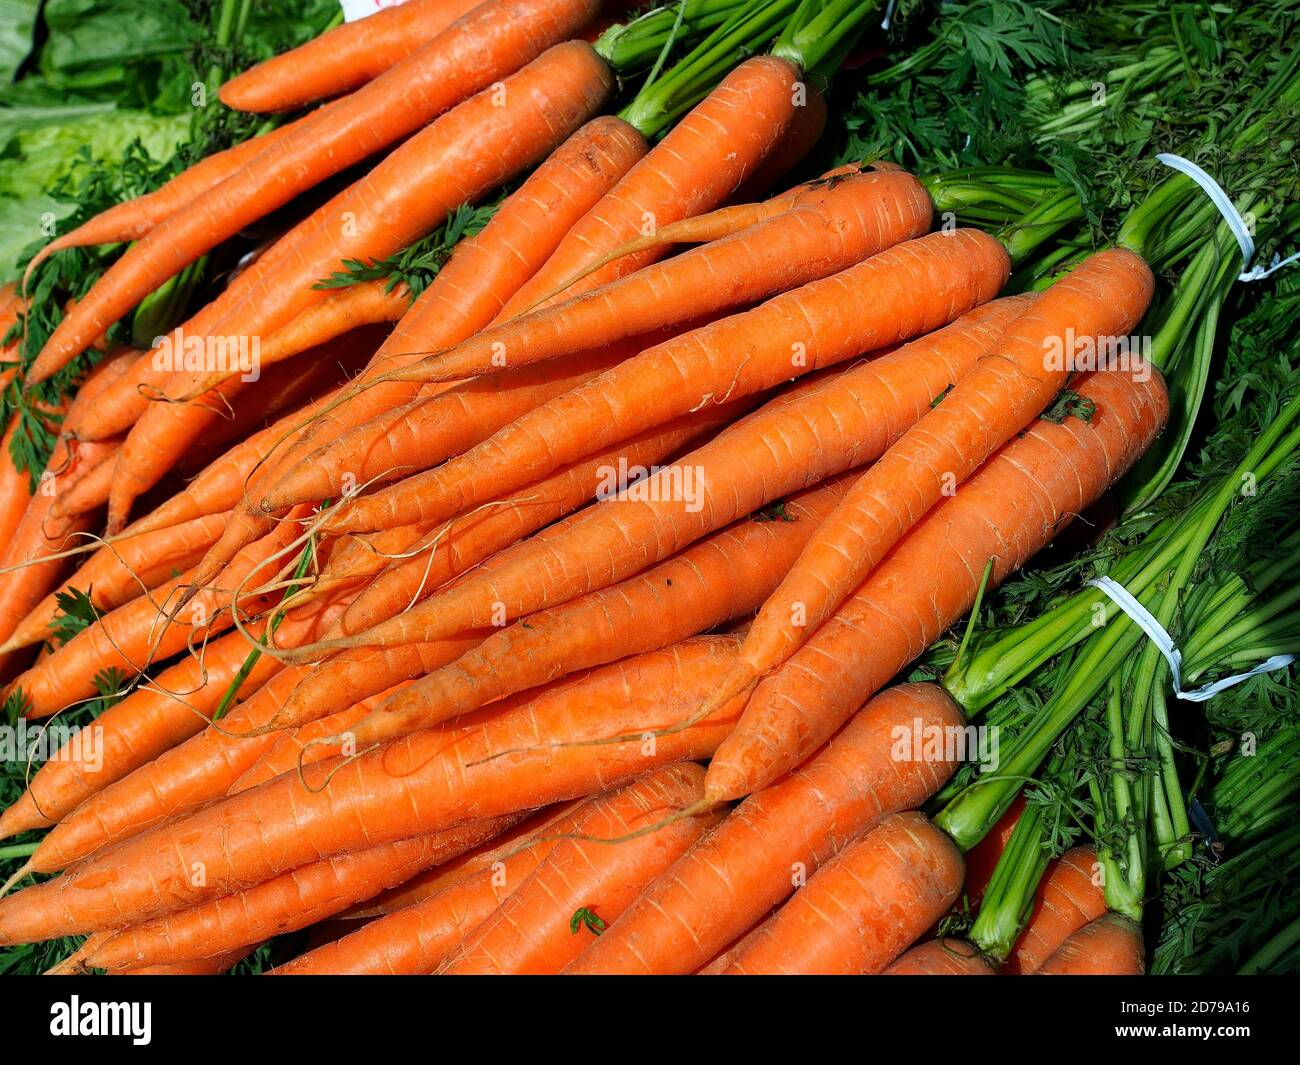 Food. Orange carrots for in an outdoor market. Stock Photo